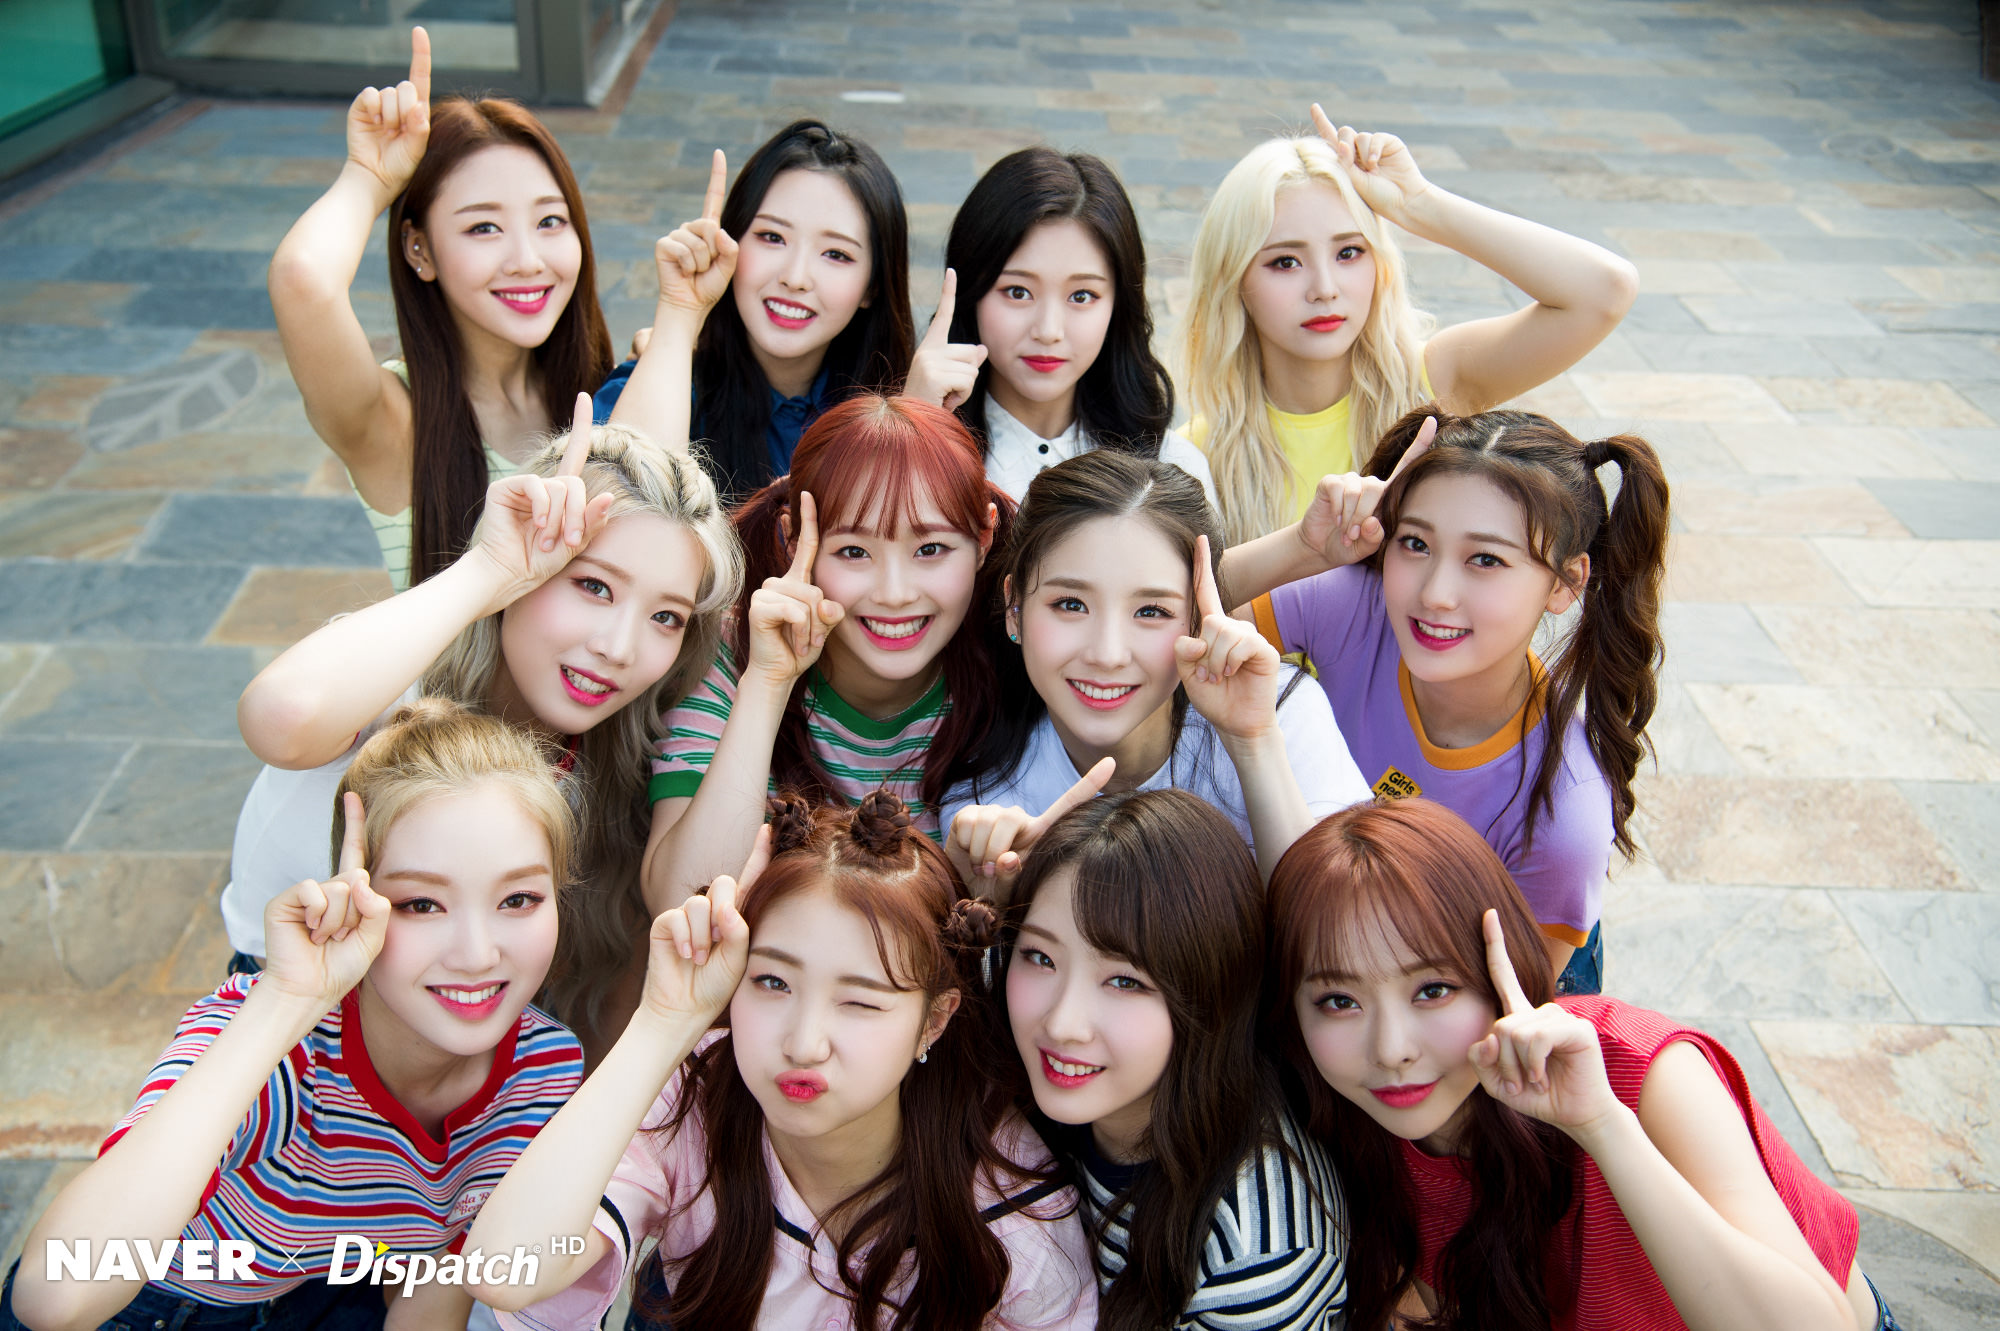 LOONA Naver x Dispatch 2018